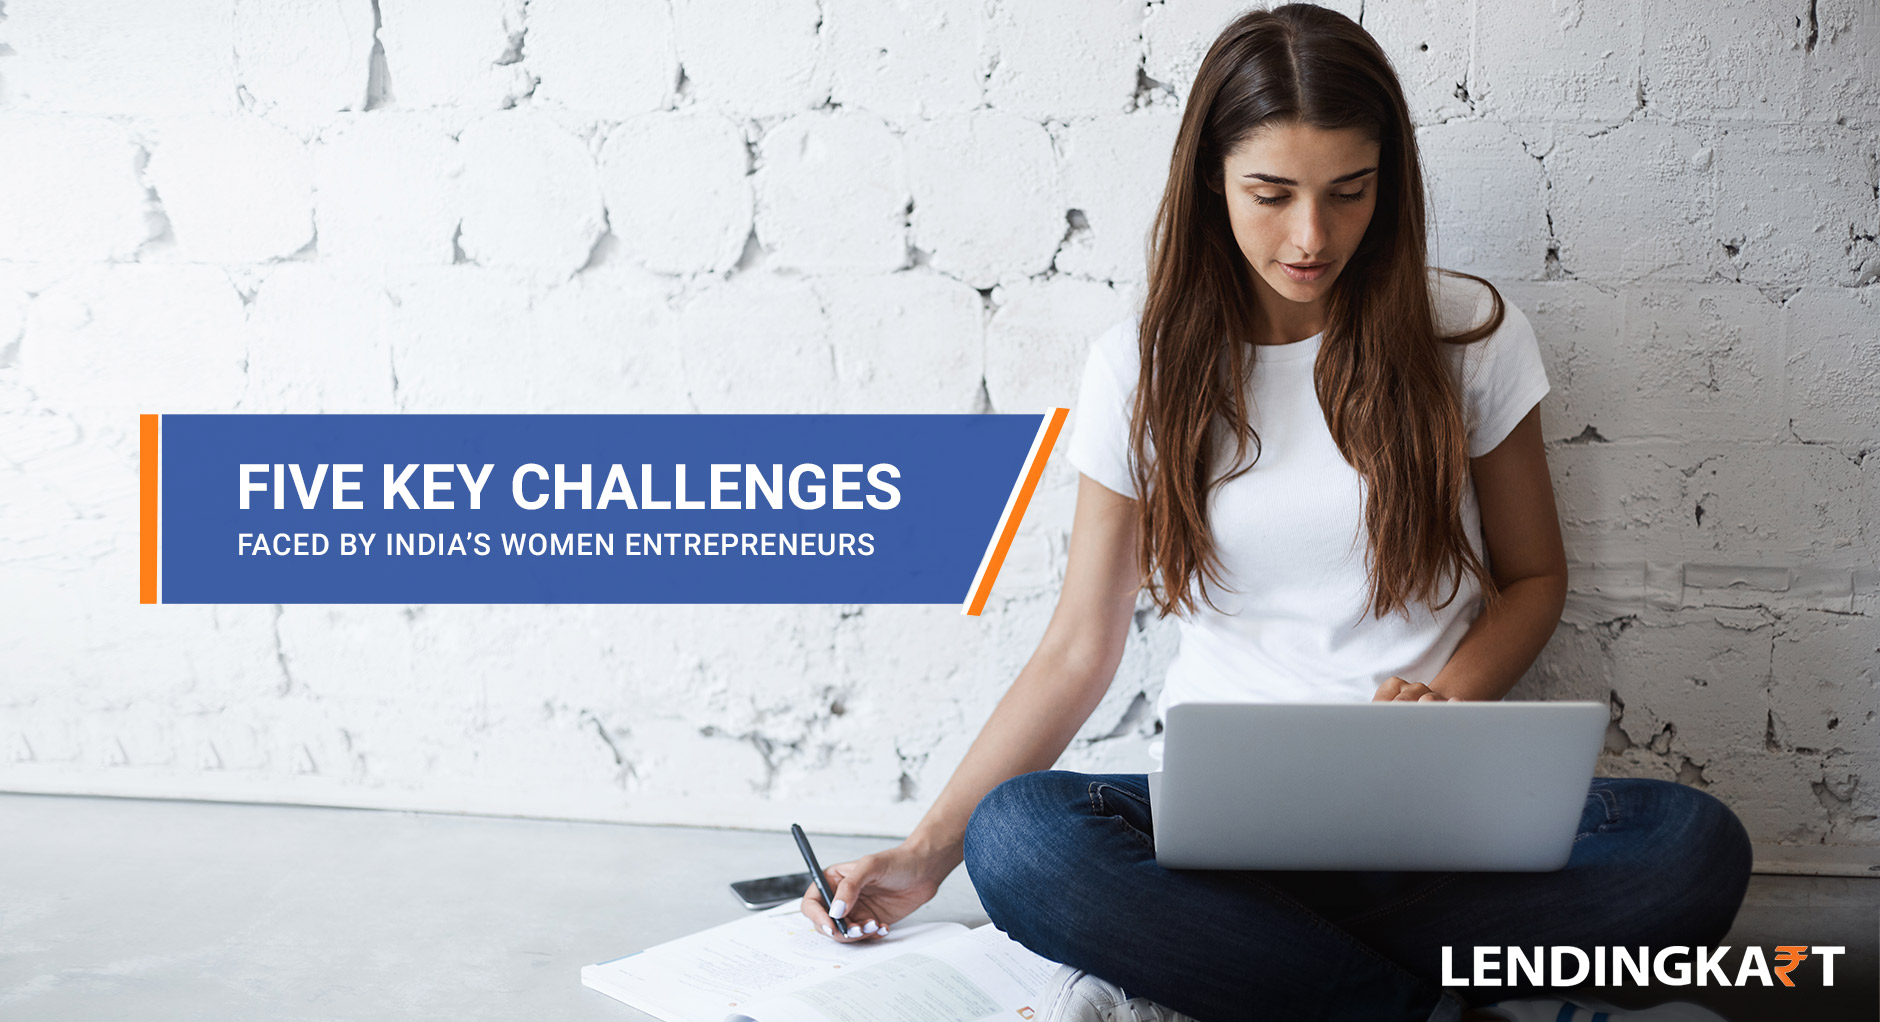 Five Key Challenges Faced by India's Women Entrepreneurs